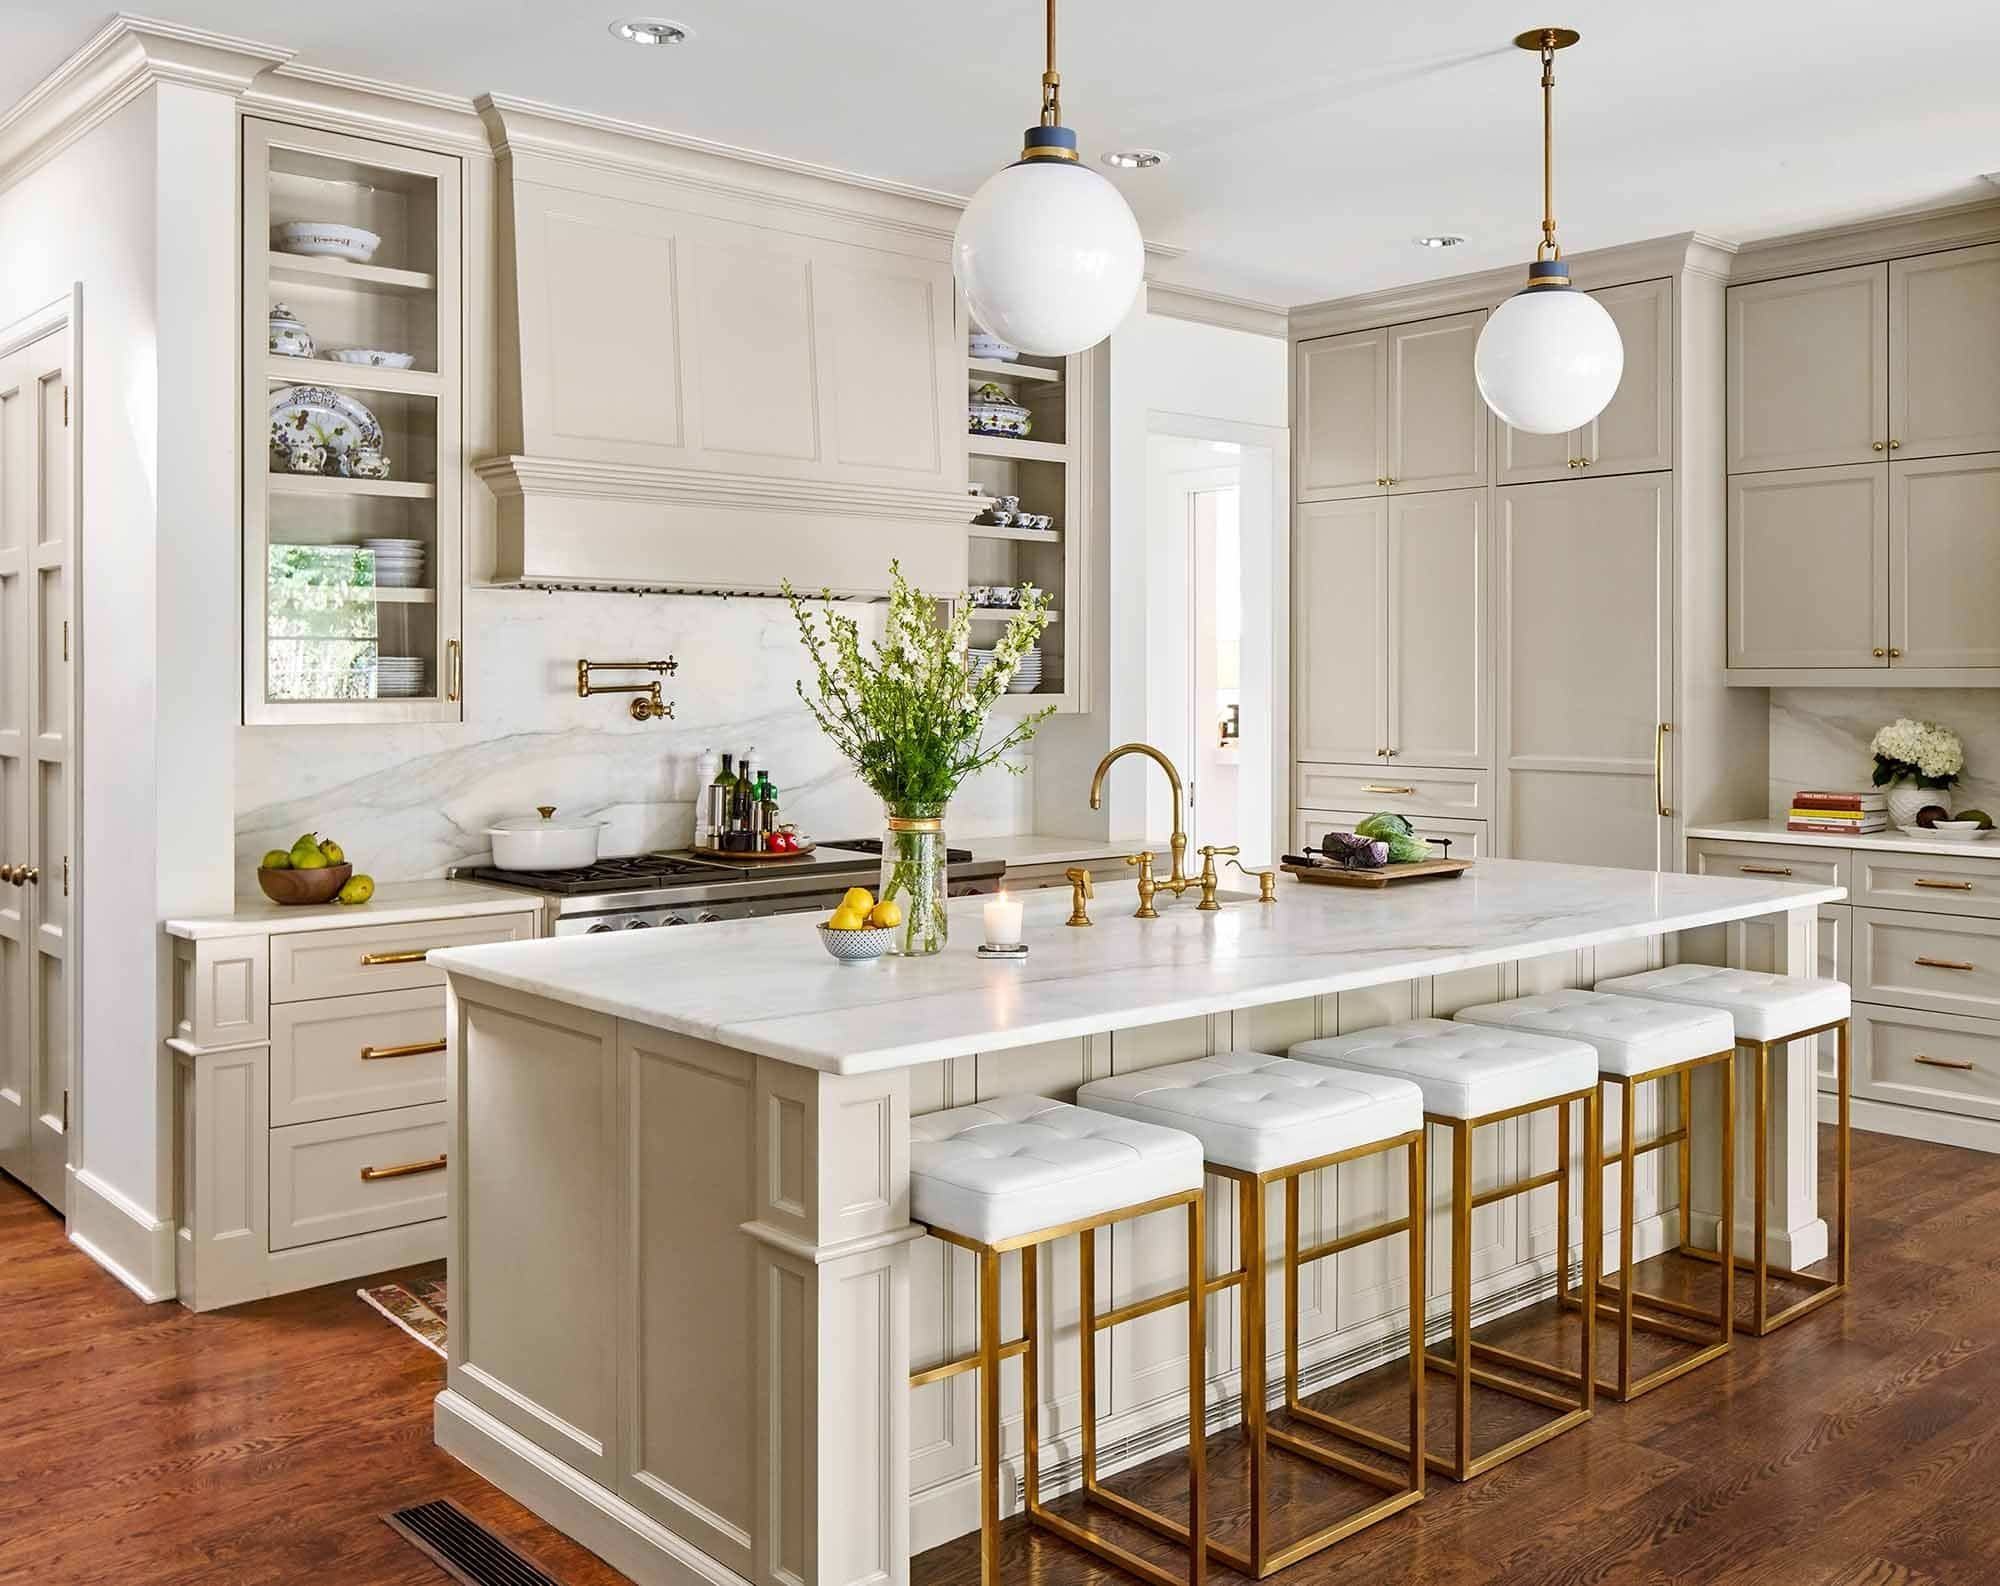 Austin Cabinet Painting Projects Gallery See Our Work Paper Moon Painting Painting Cabinets Raised Panel Cabinets Contemporary Kitchen